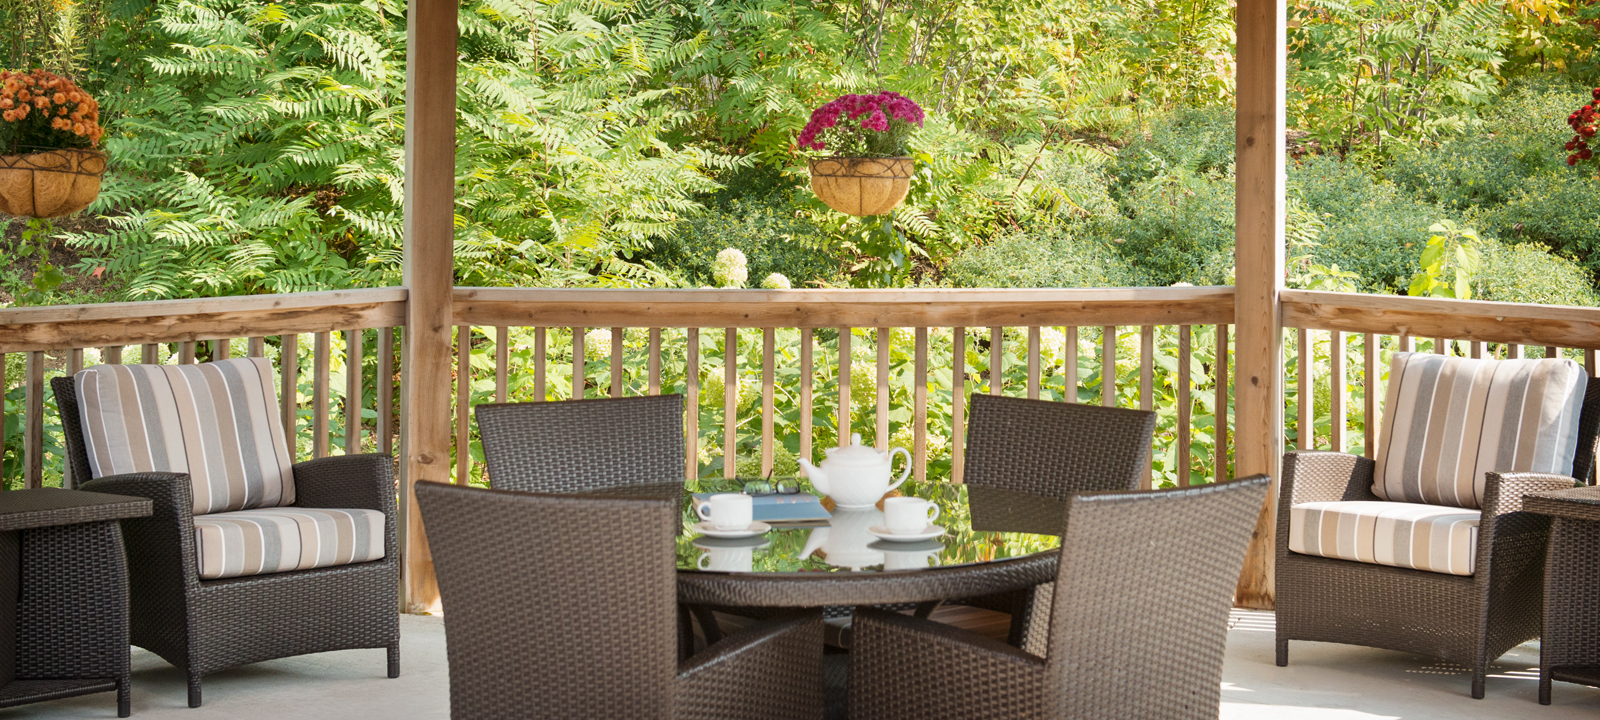 Outdoor terrace with tea set at Amica Little Lake senior living residence.